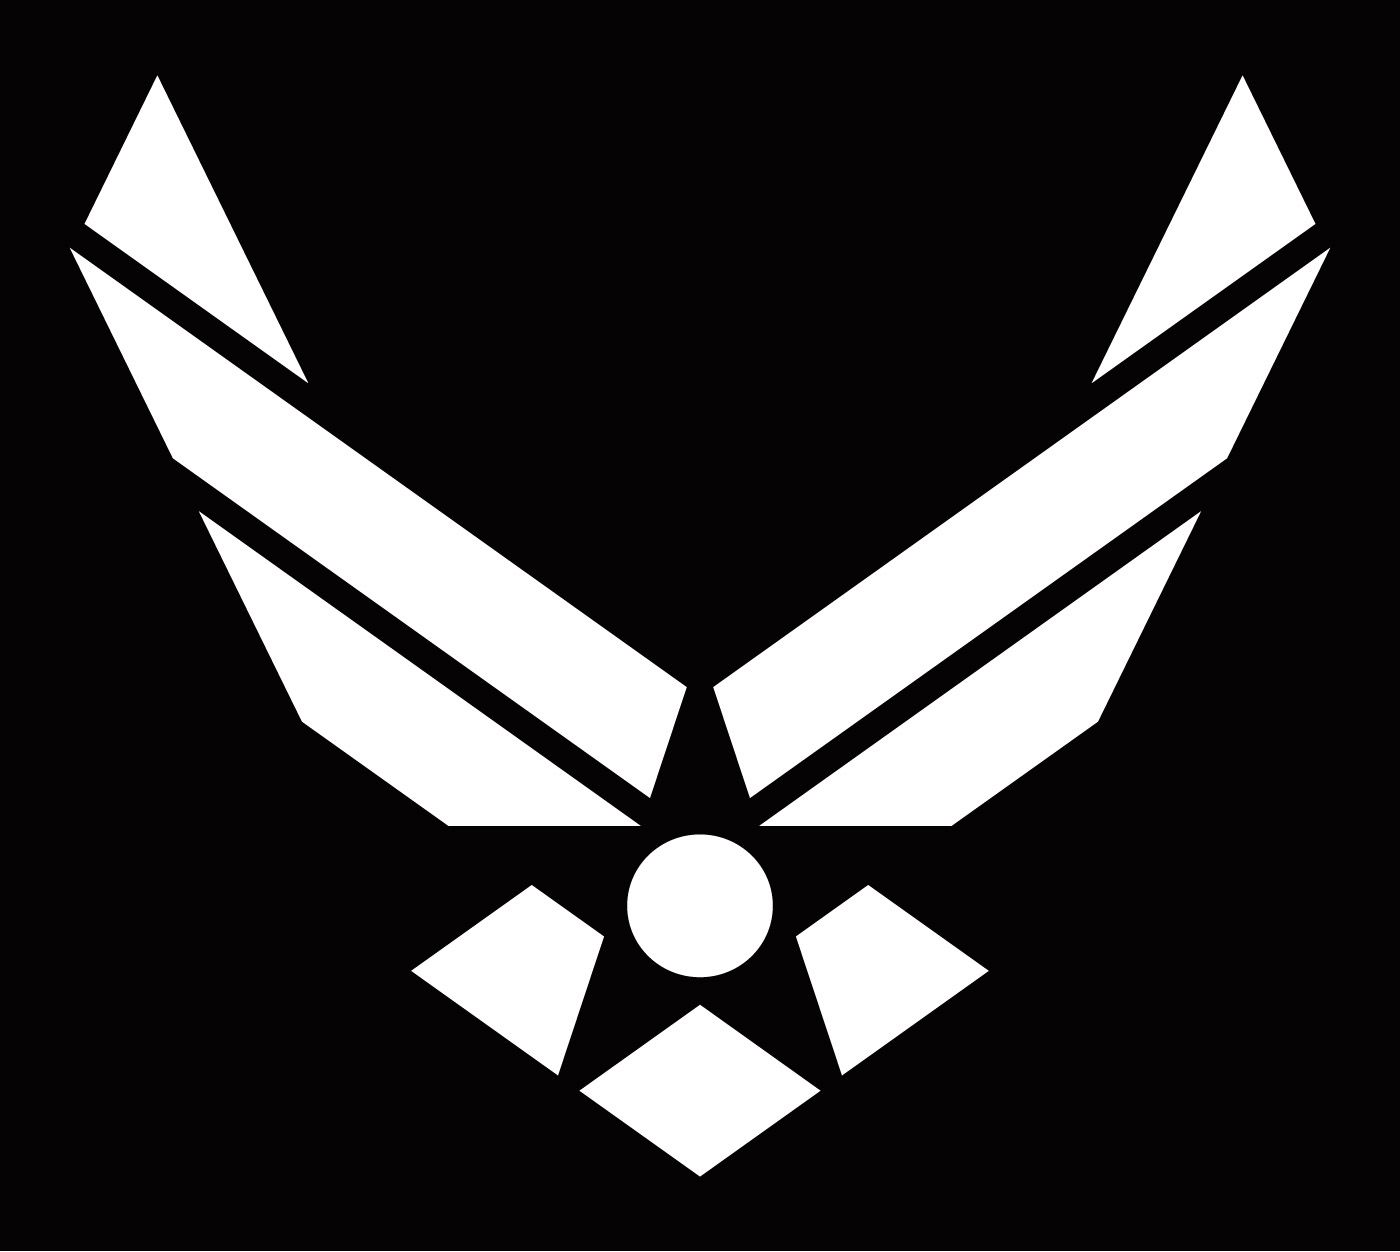 Air force patch clipart black and white clip black and white america flag with eagle and air force logo | Usaf+symbol+wallpaper ... clip black and white